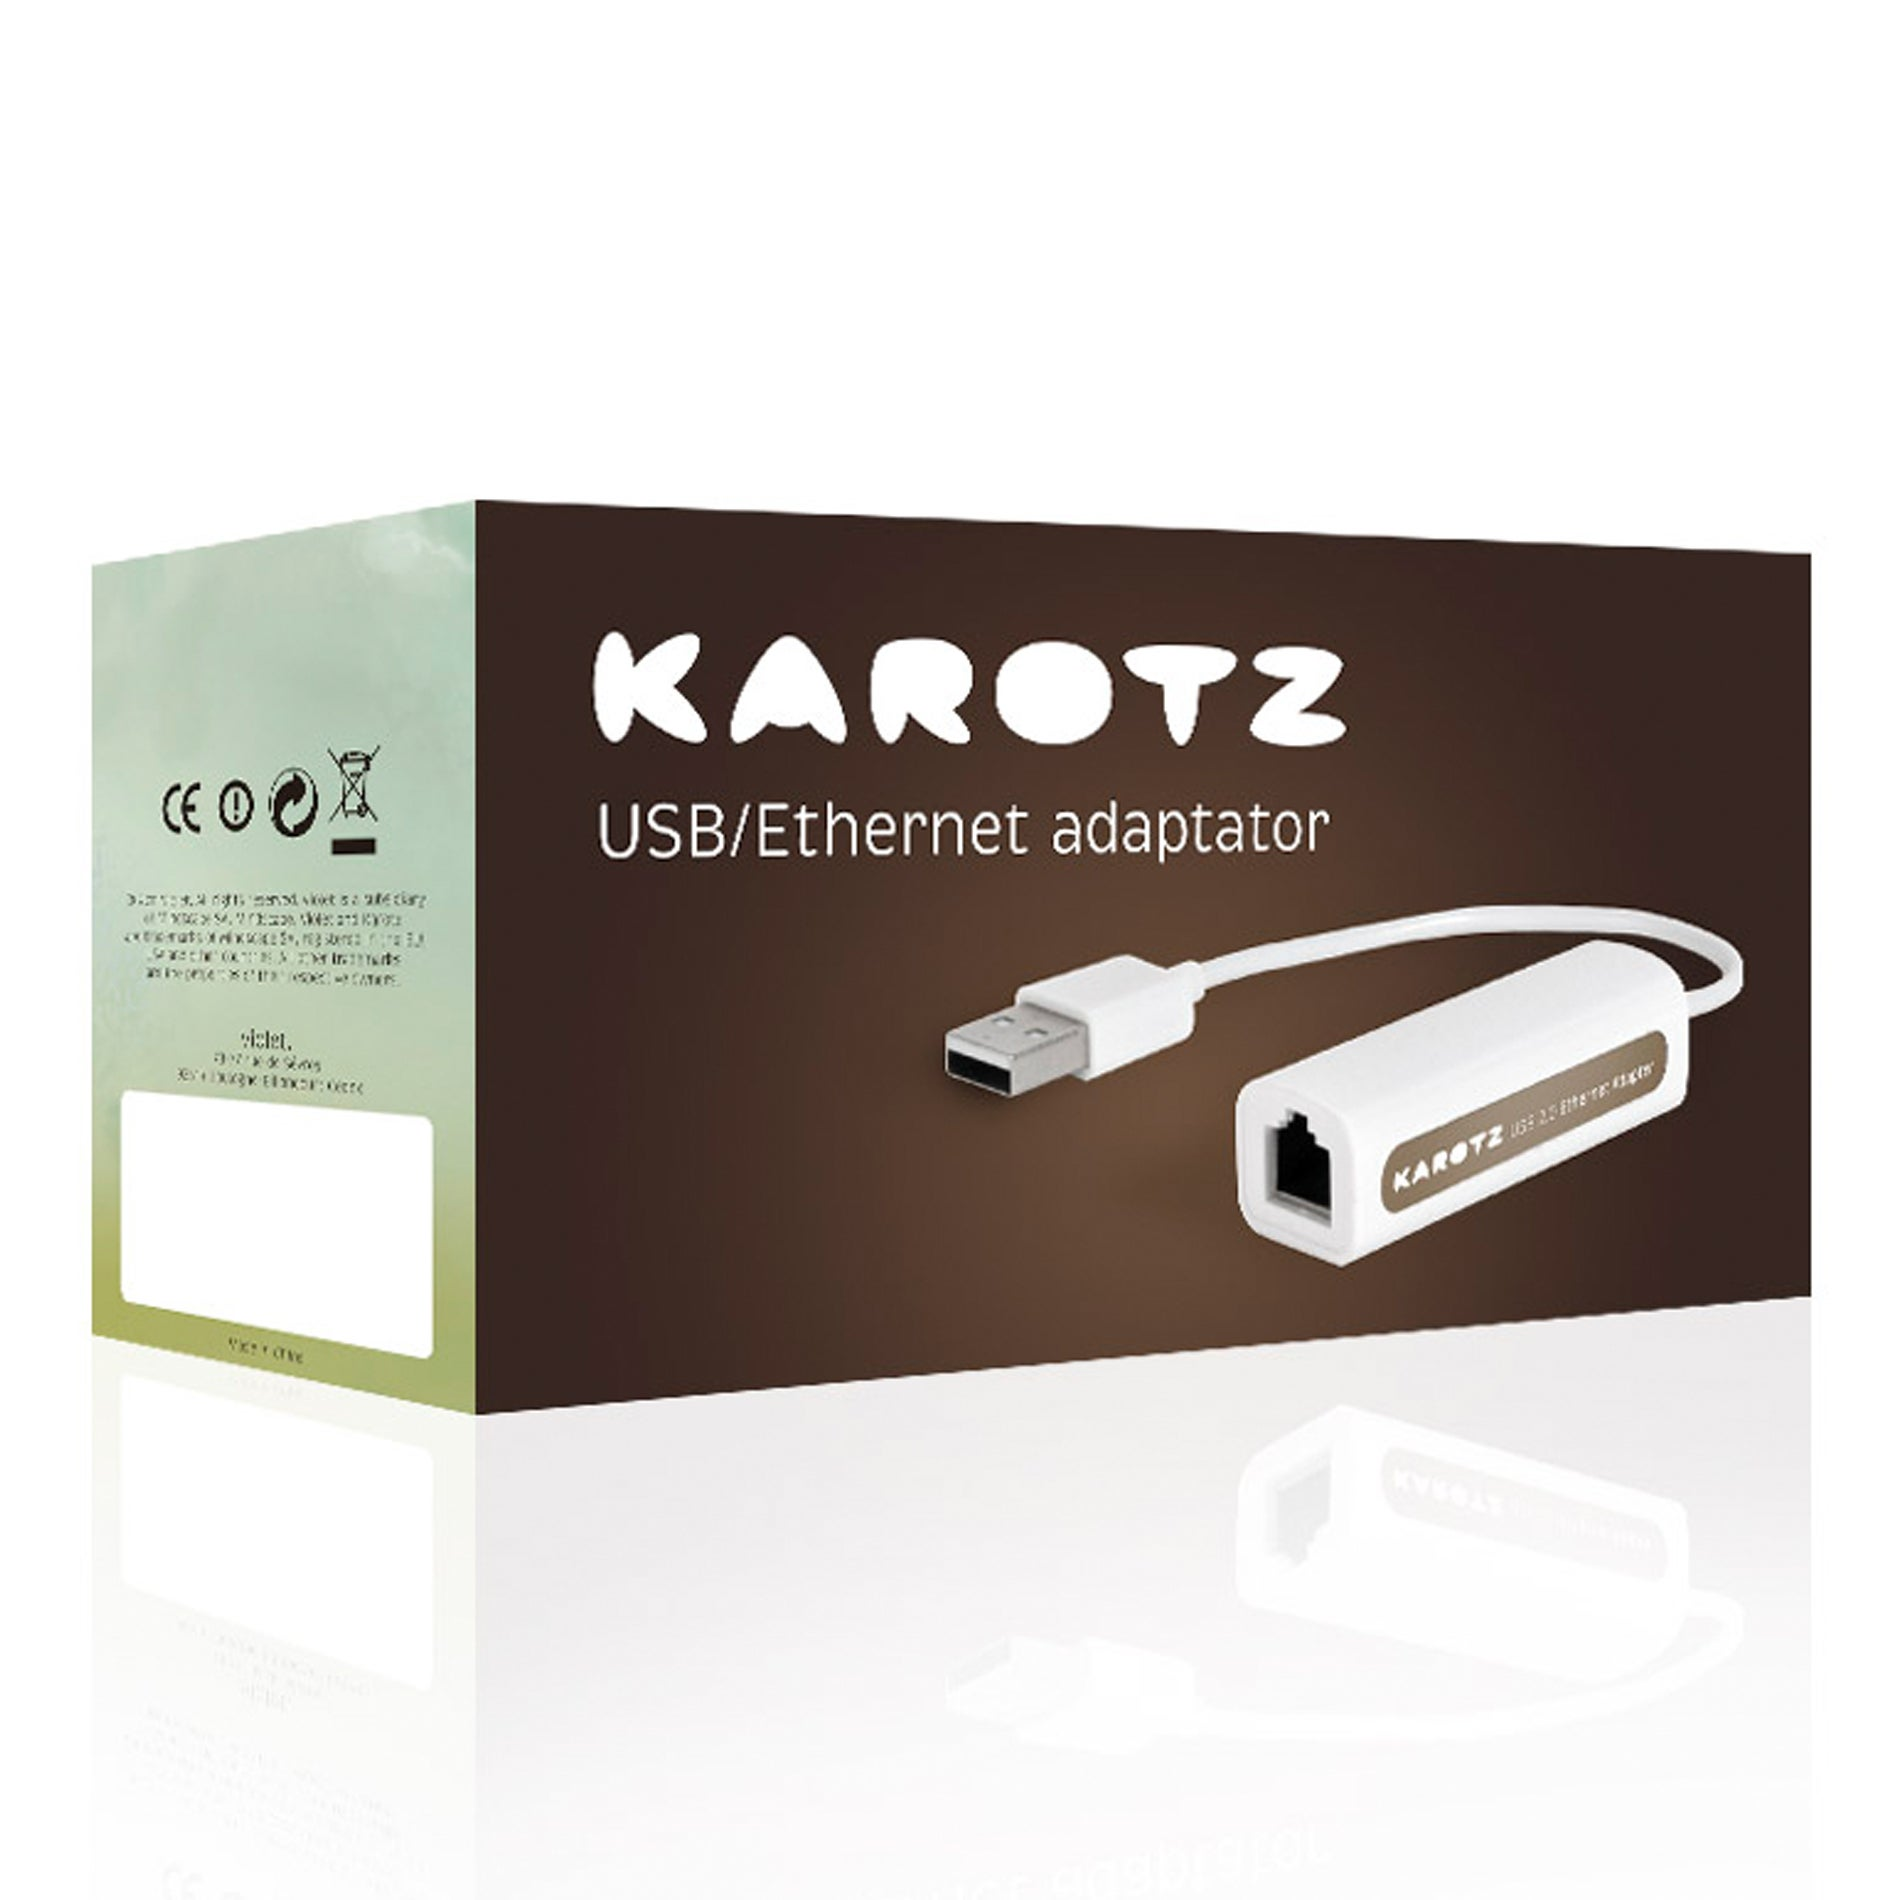 Dongle Karotz USB/Ethernet Five-foot Internet Adapter Cable